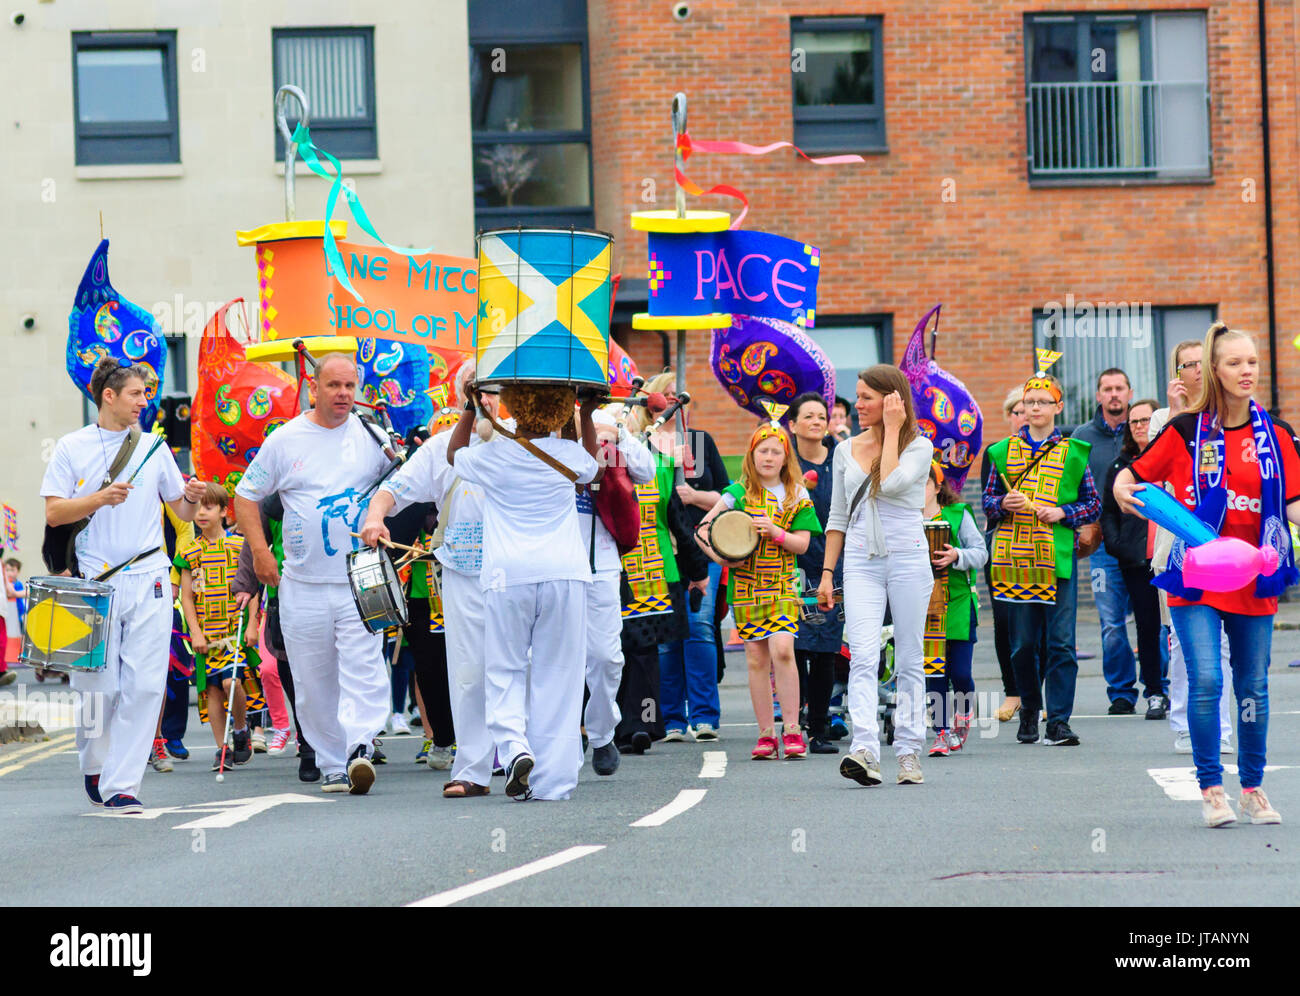 A group of males and females wearing colourful costumes celebrating Sma Shot Day on the streets of Paisley, Scotland on 1st July 2017 - Stock Image